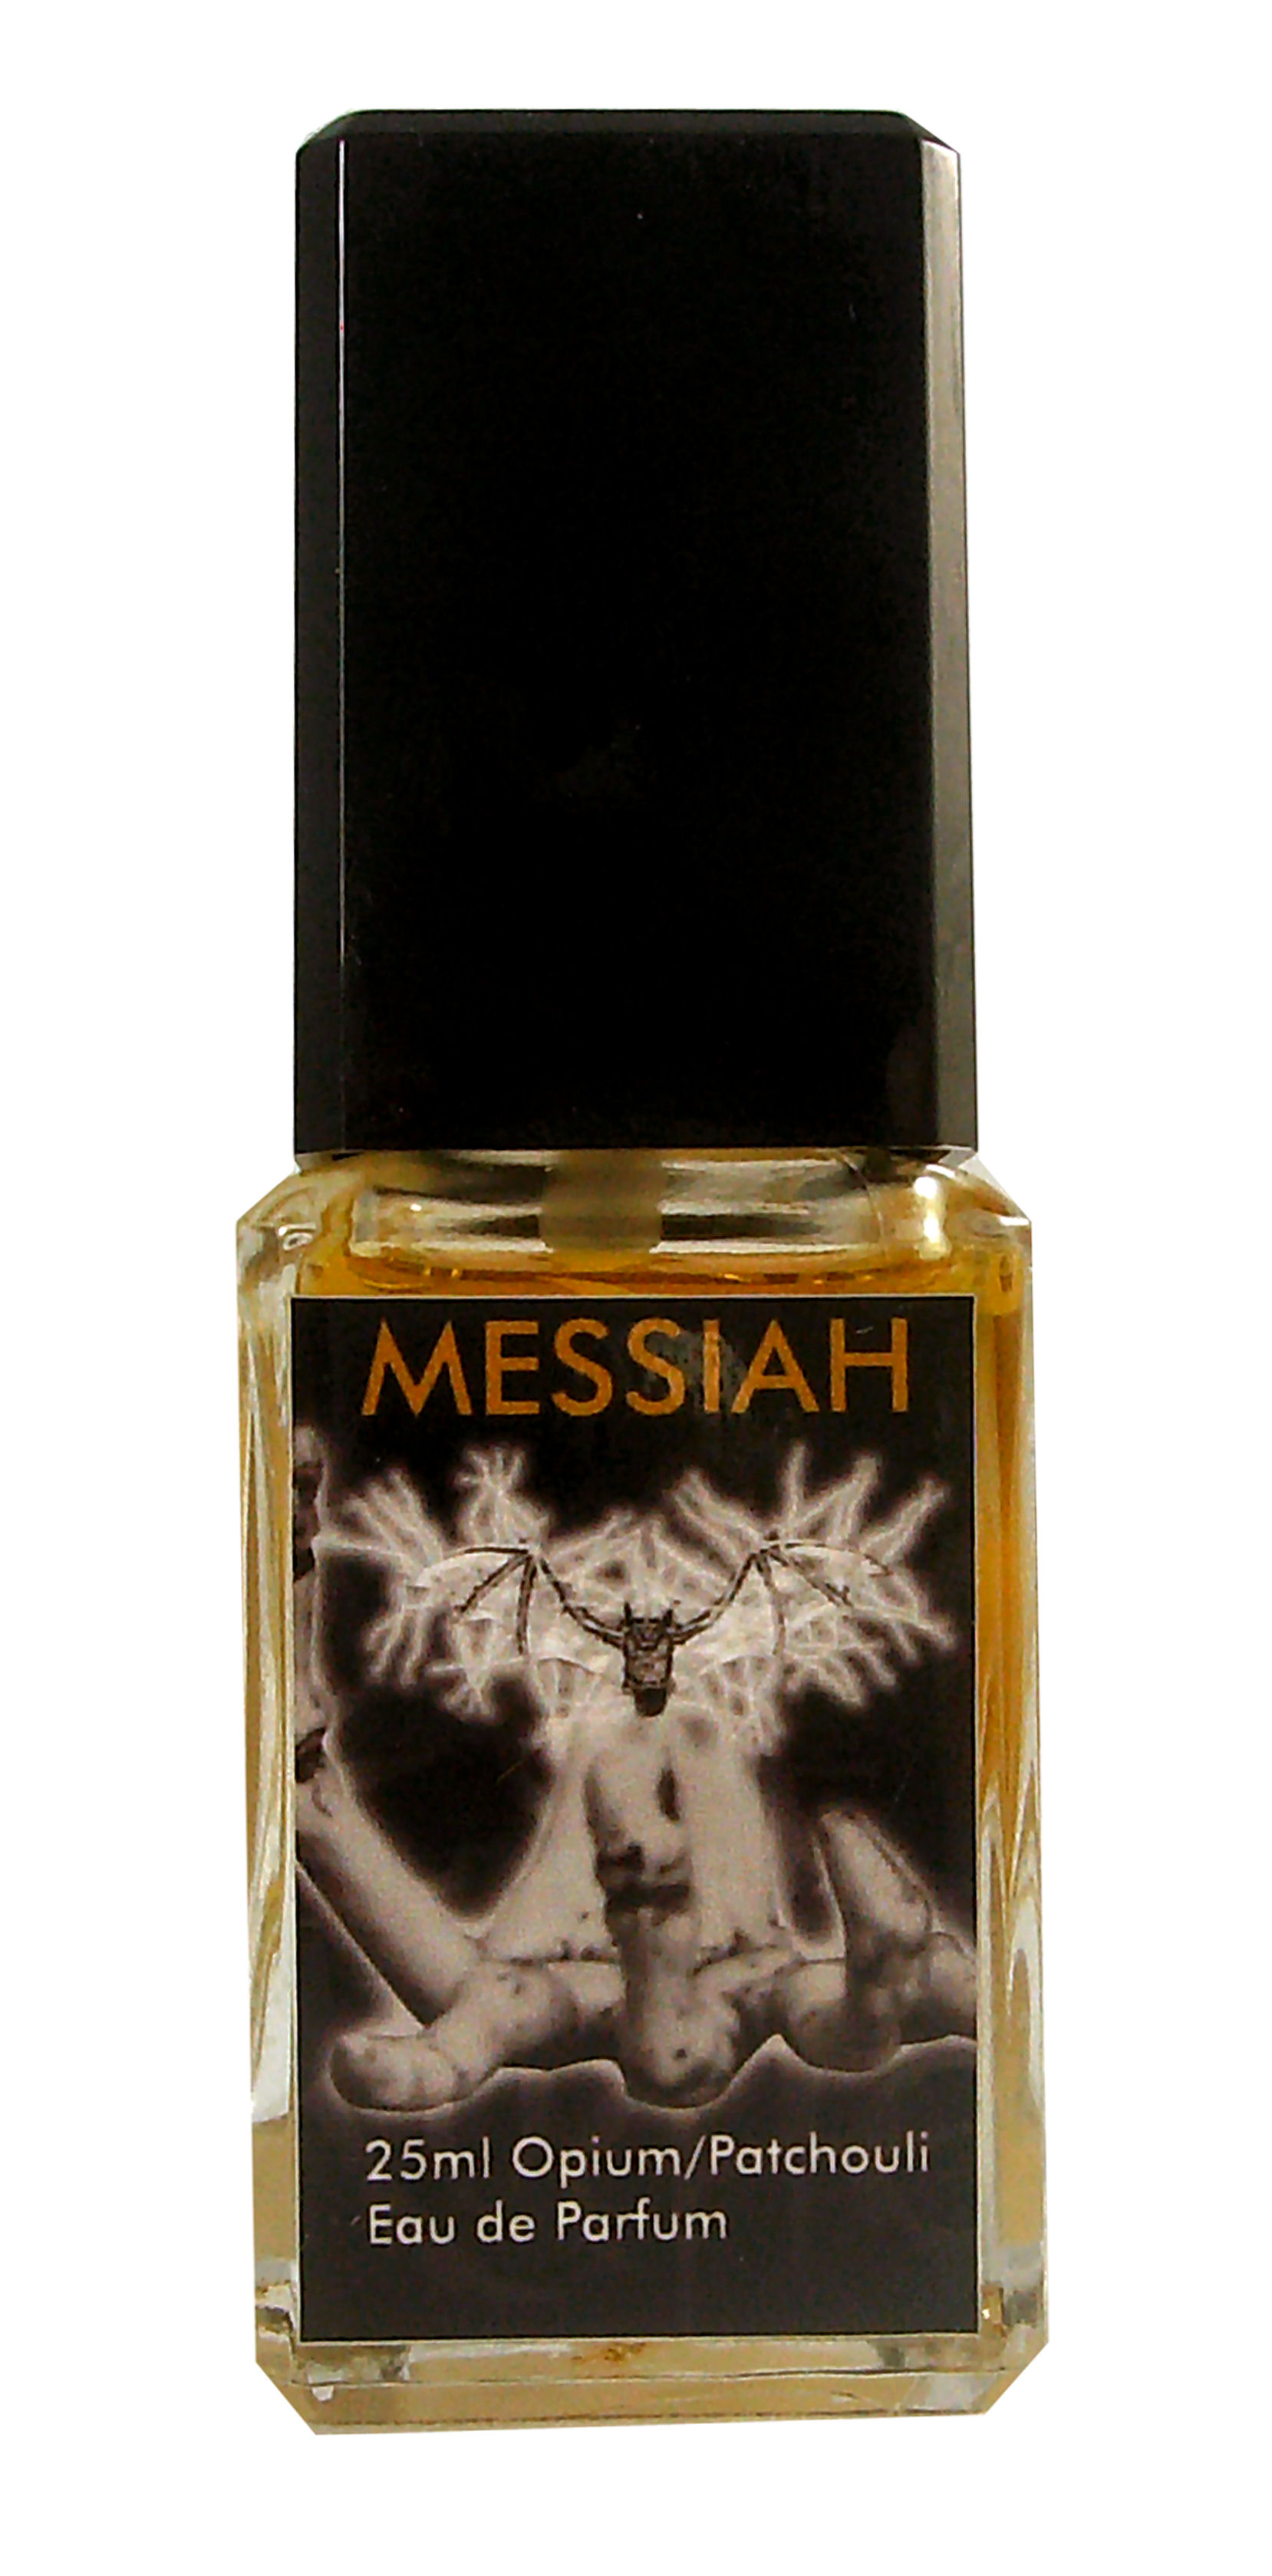 Patchouli Messiah, Eau de Parfum 25ml